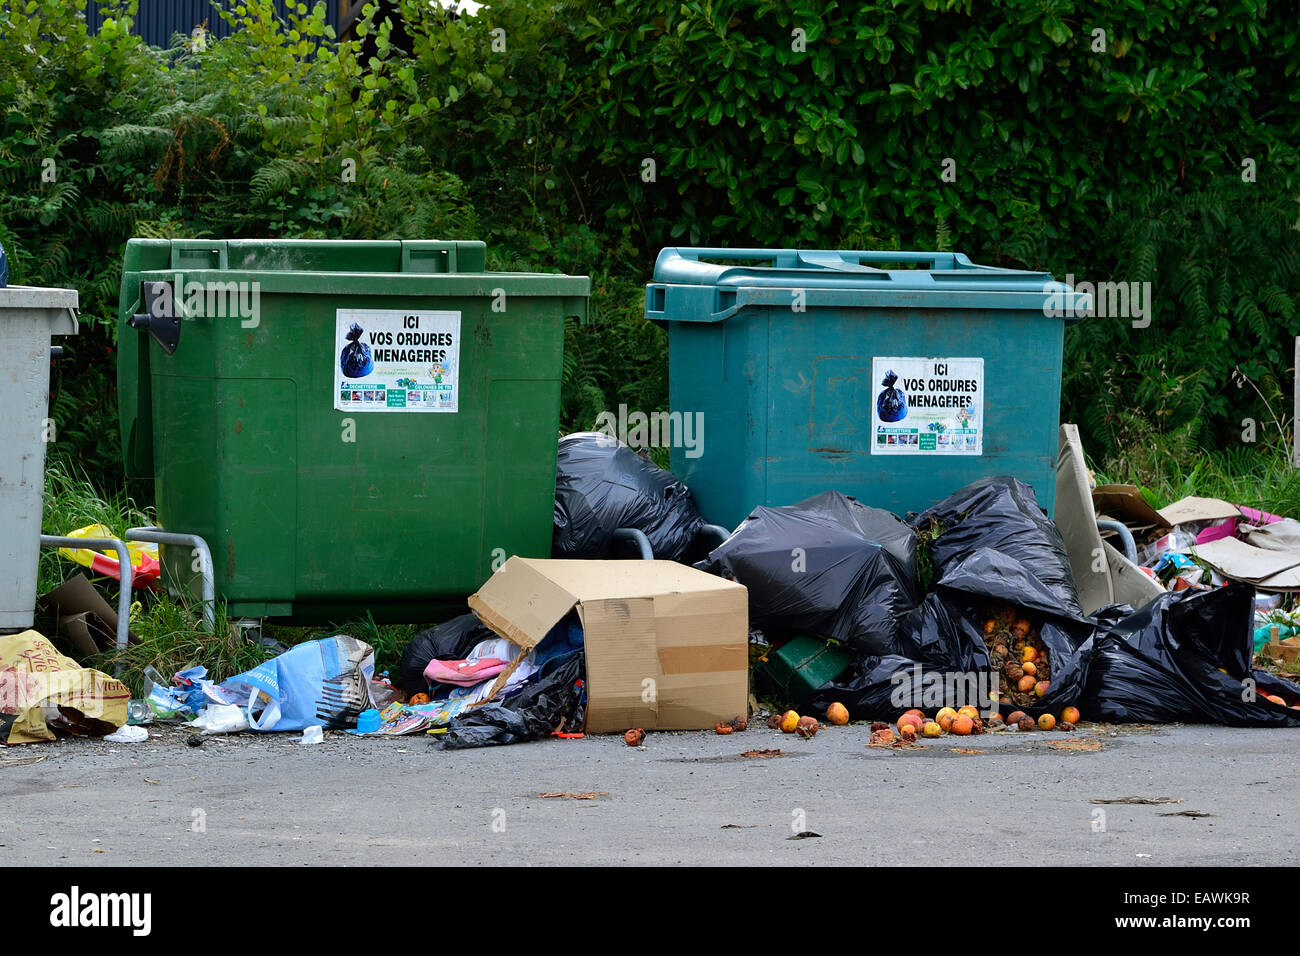 Dumping of waste next to containers for recycling, uncivil practice. - Stock Image